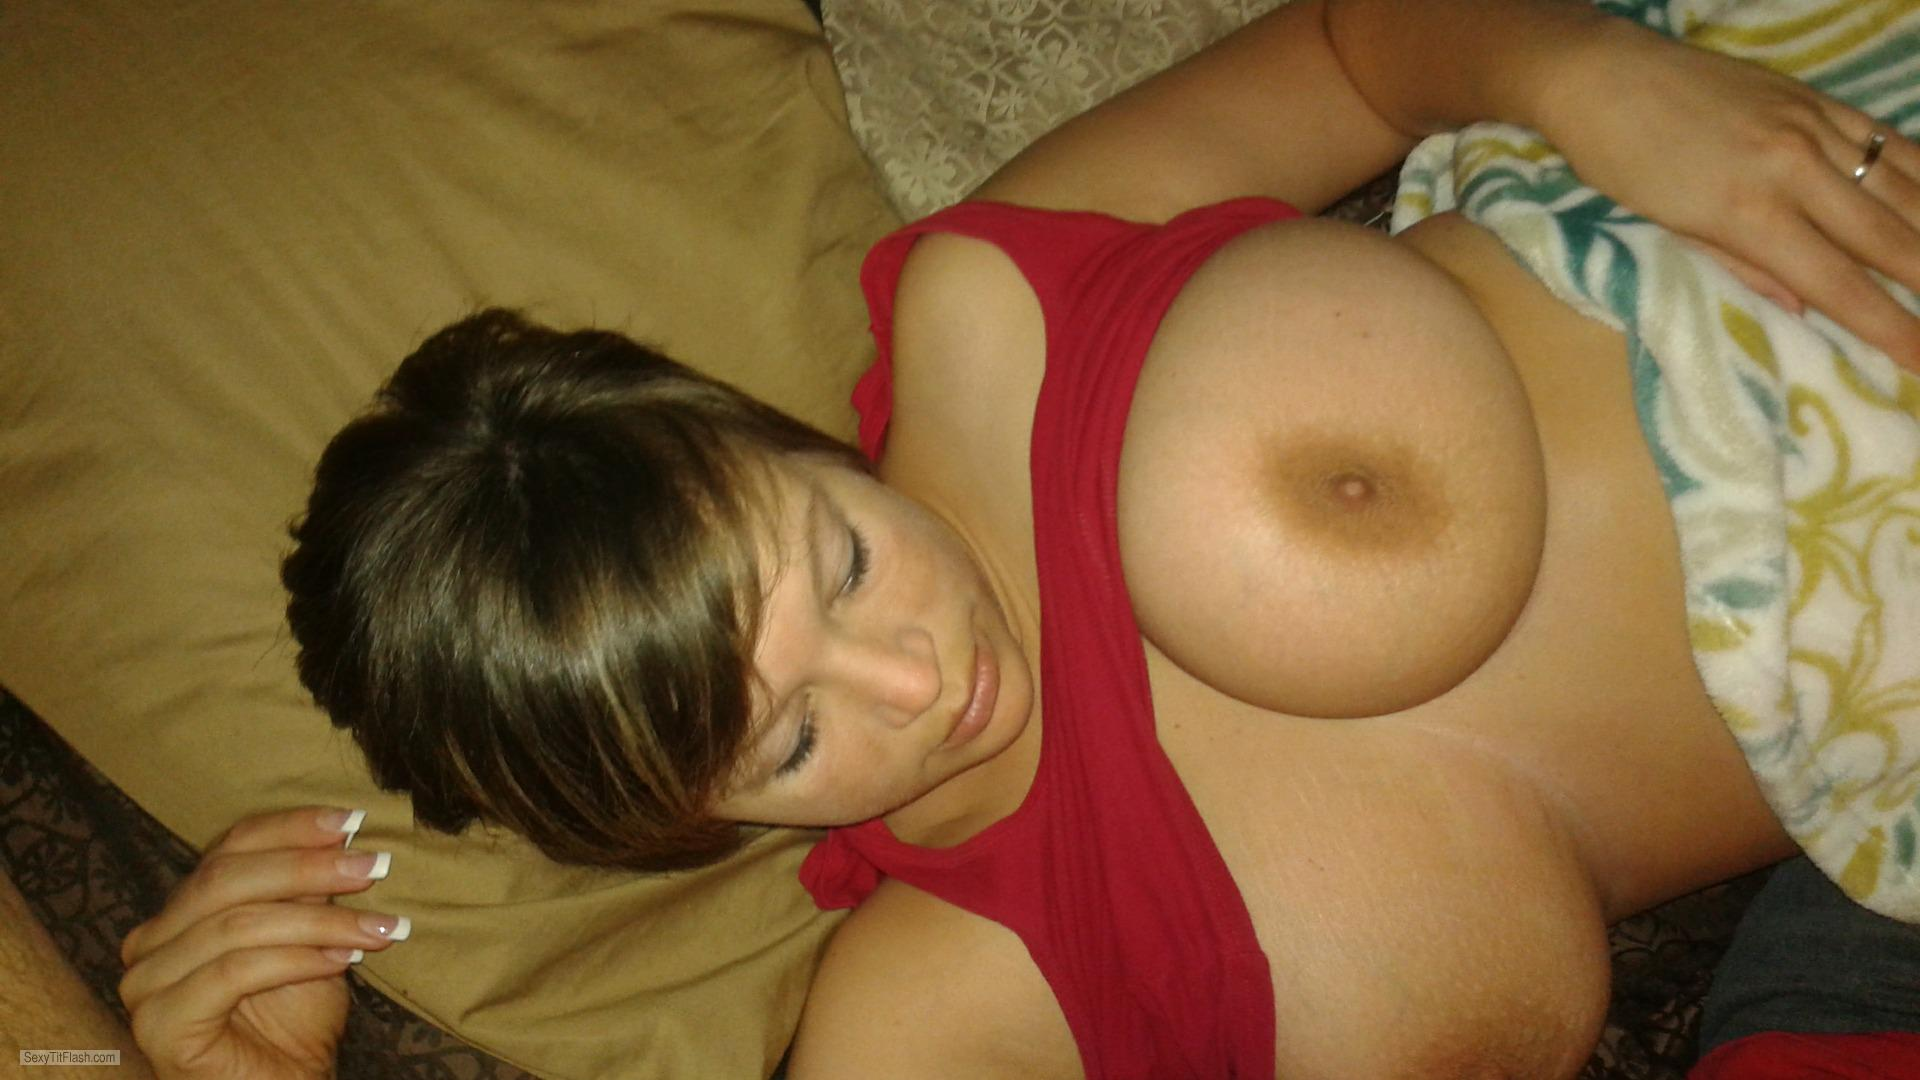 Tit Flash: Wife's Big Tits - Mercedes from United States